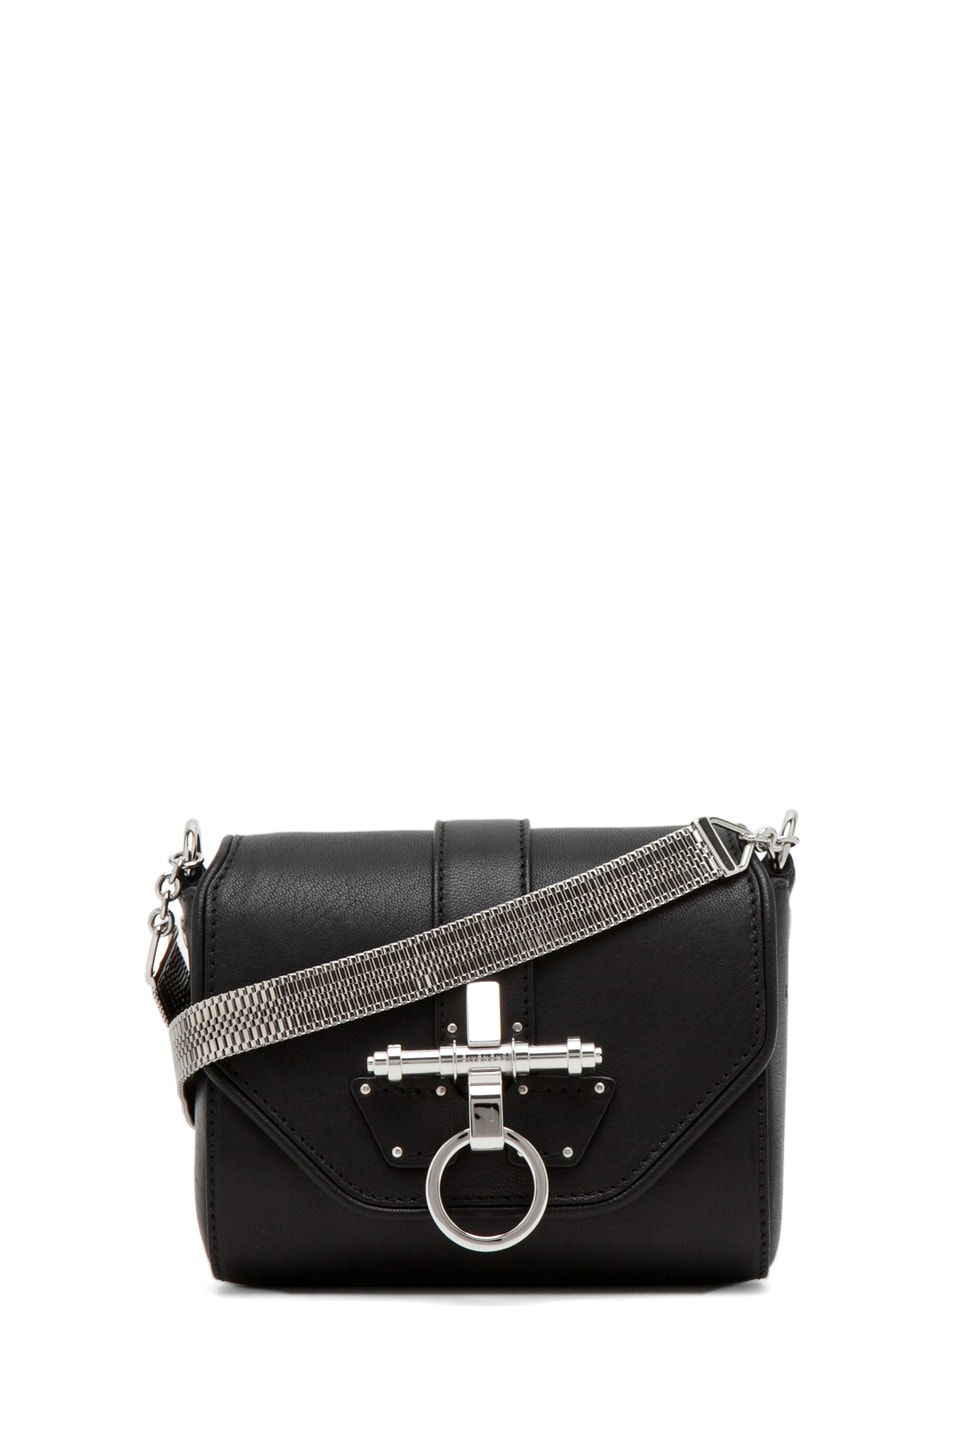 Image 1 of GIVENCHY Small Obsedia in Black